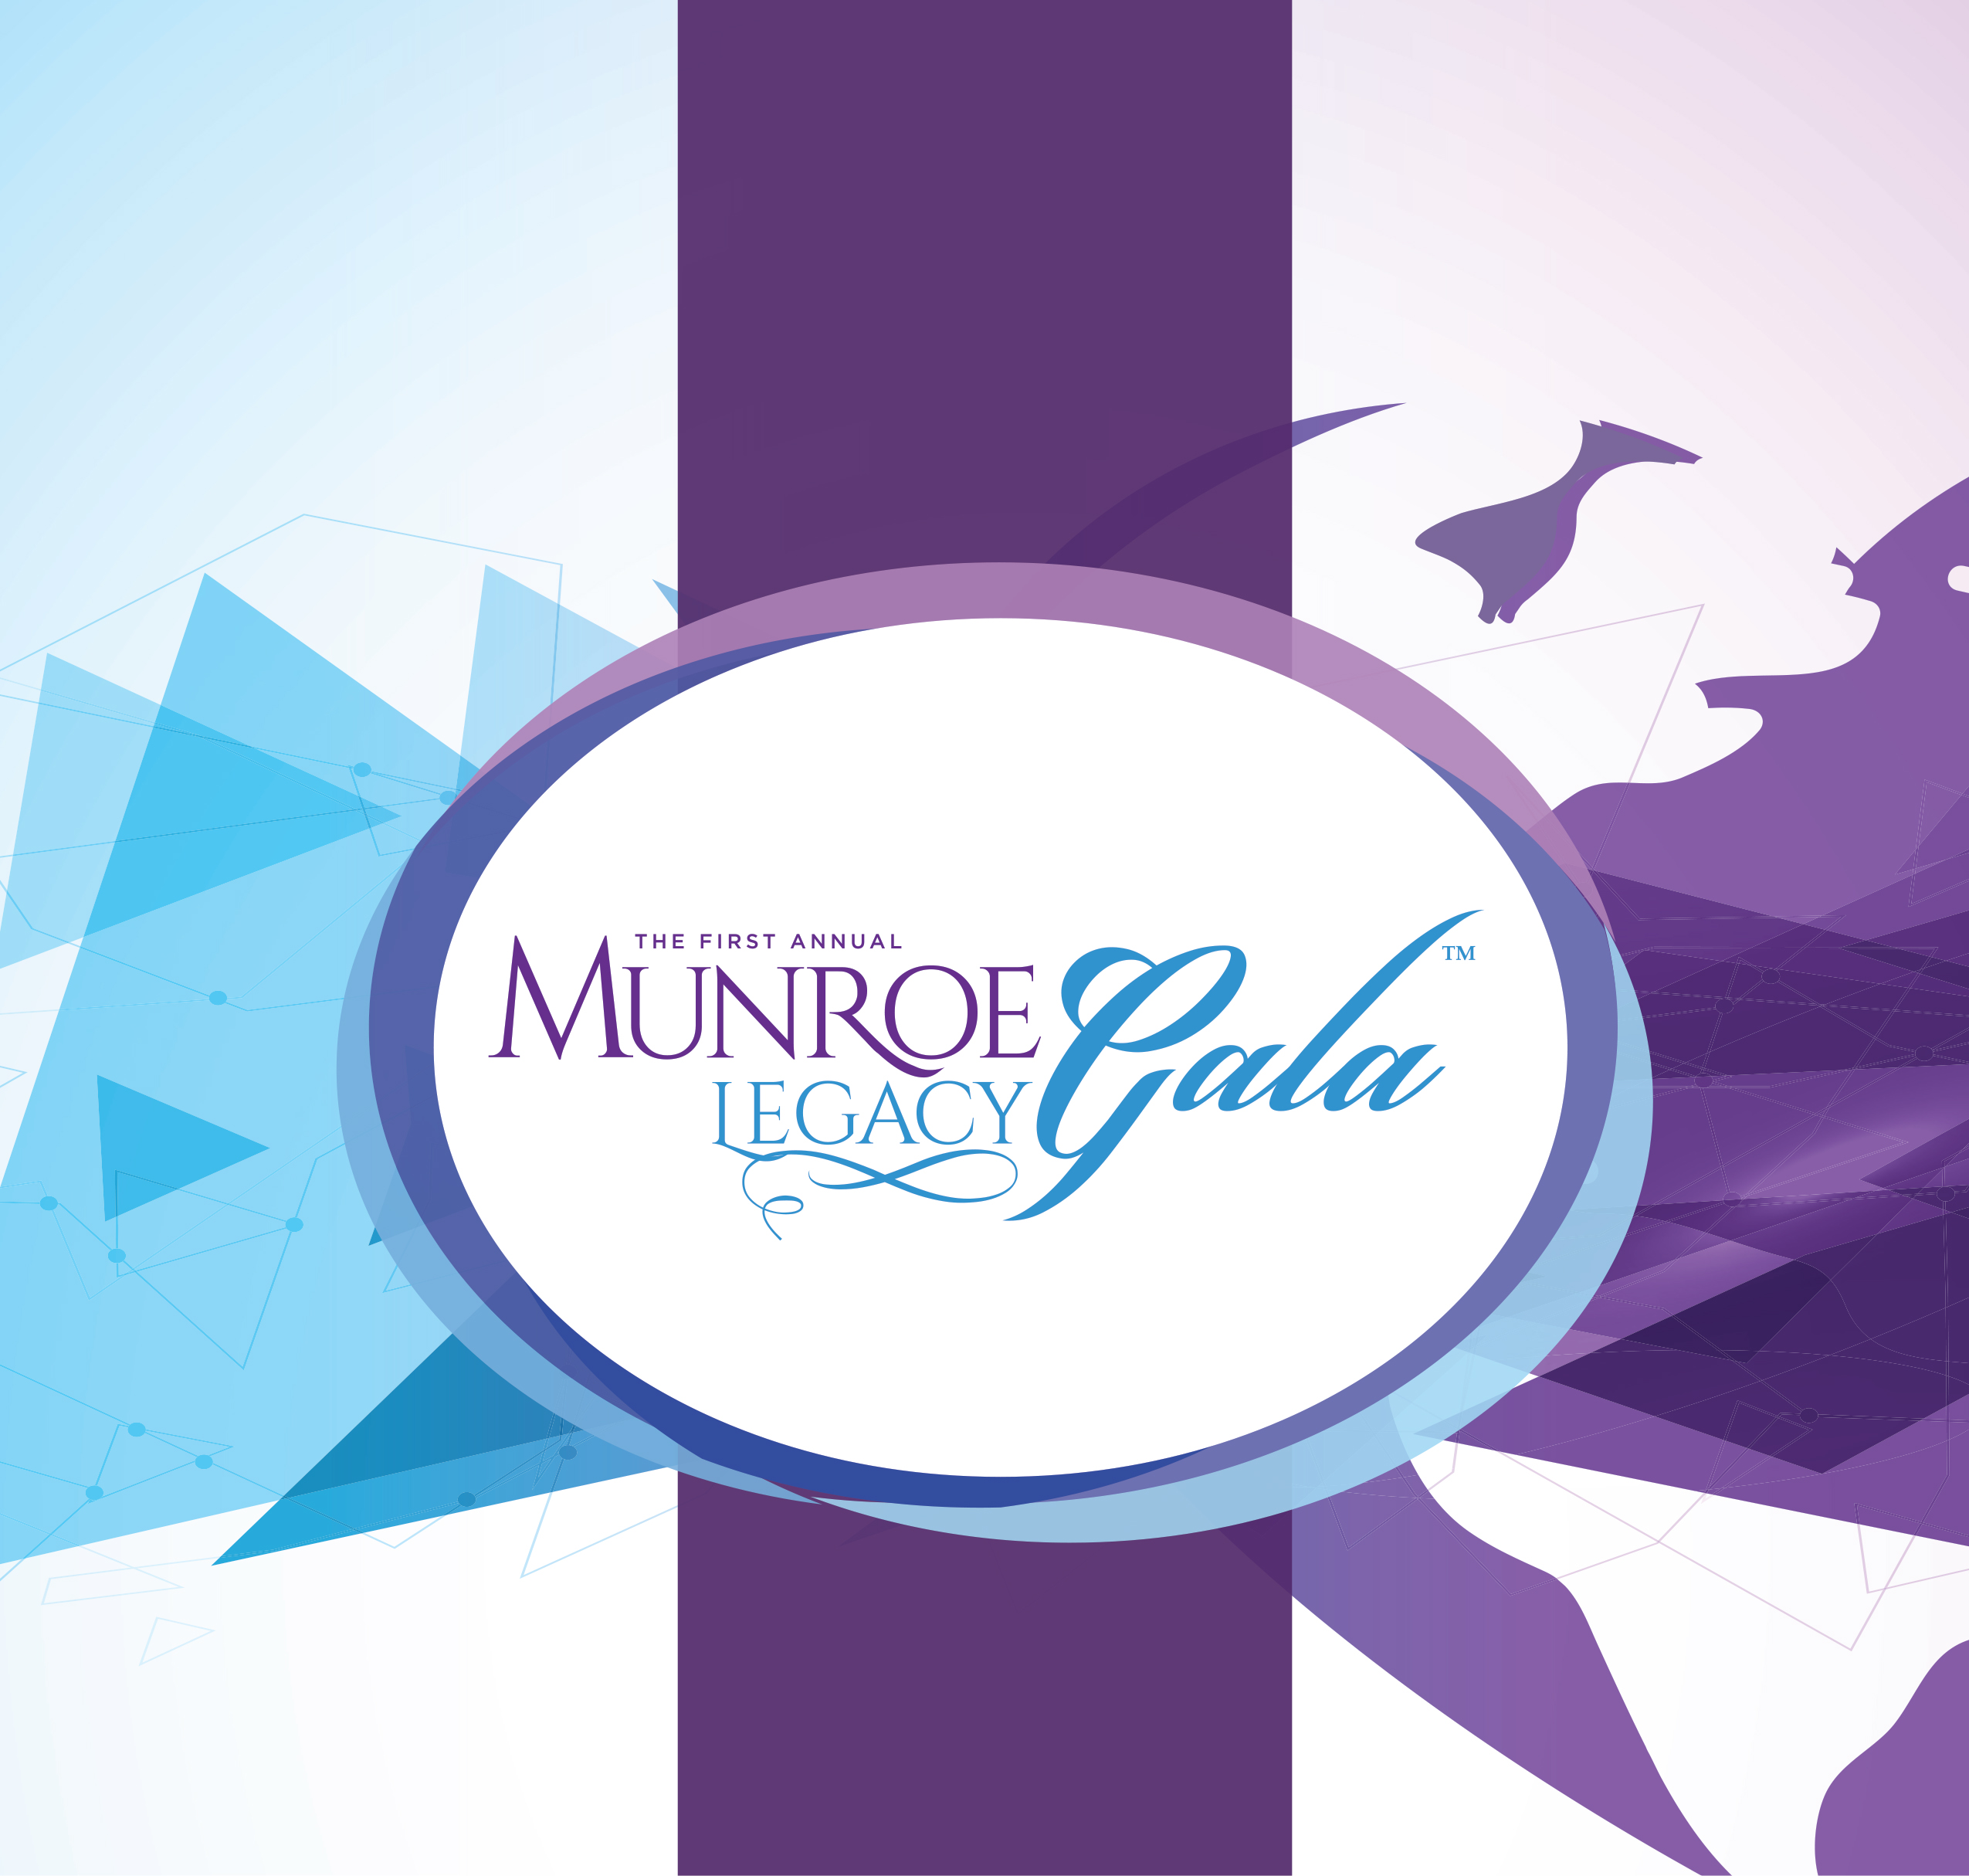 MUNROE SIBLINGS SUCCESSFULLY LAUNCH THE MYLES AND RUTH MUNROE FOUNDATION AT MUNROE LEGACY GALA